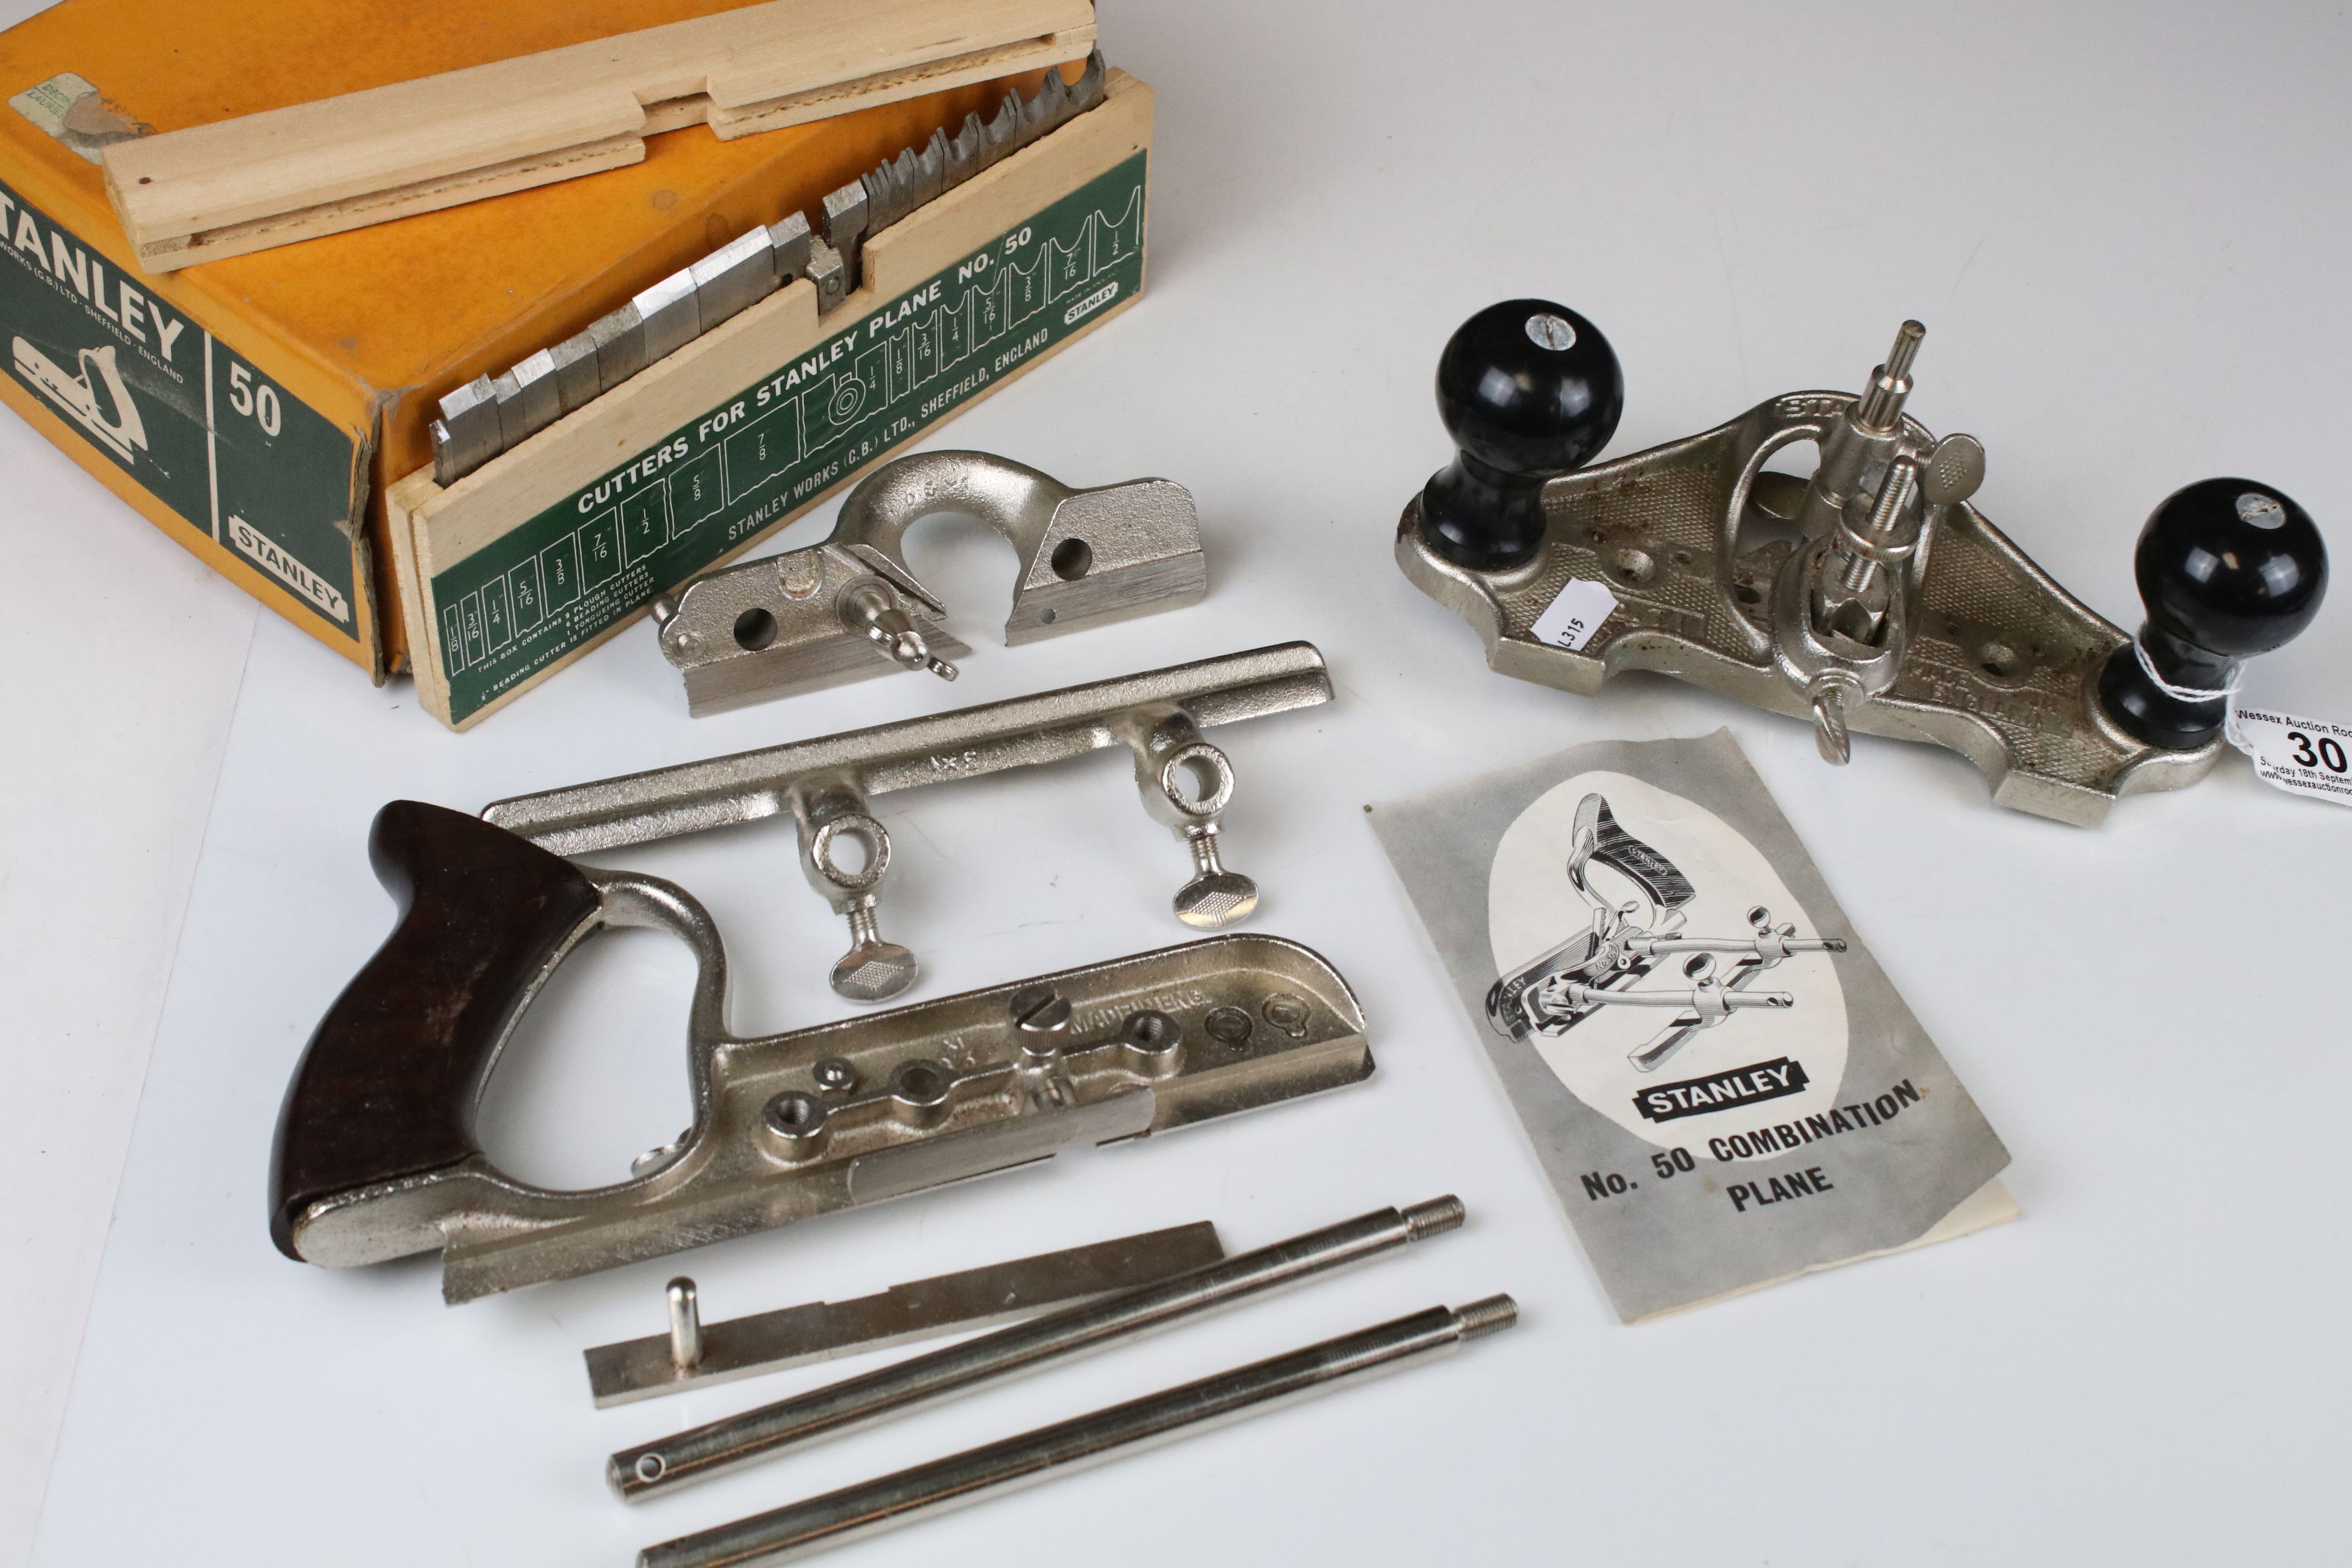 Boxed Stanley No. 50 Combination Plane together with a Stanley No. 71 Router Plane